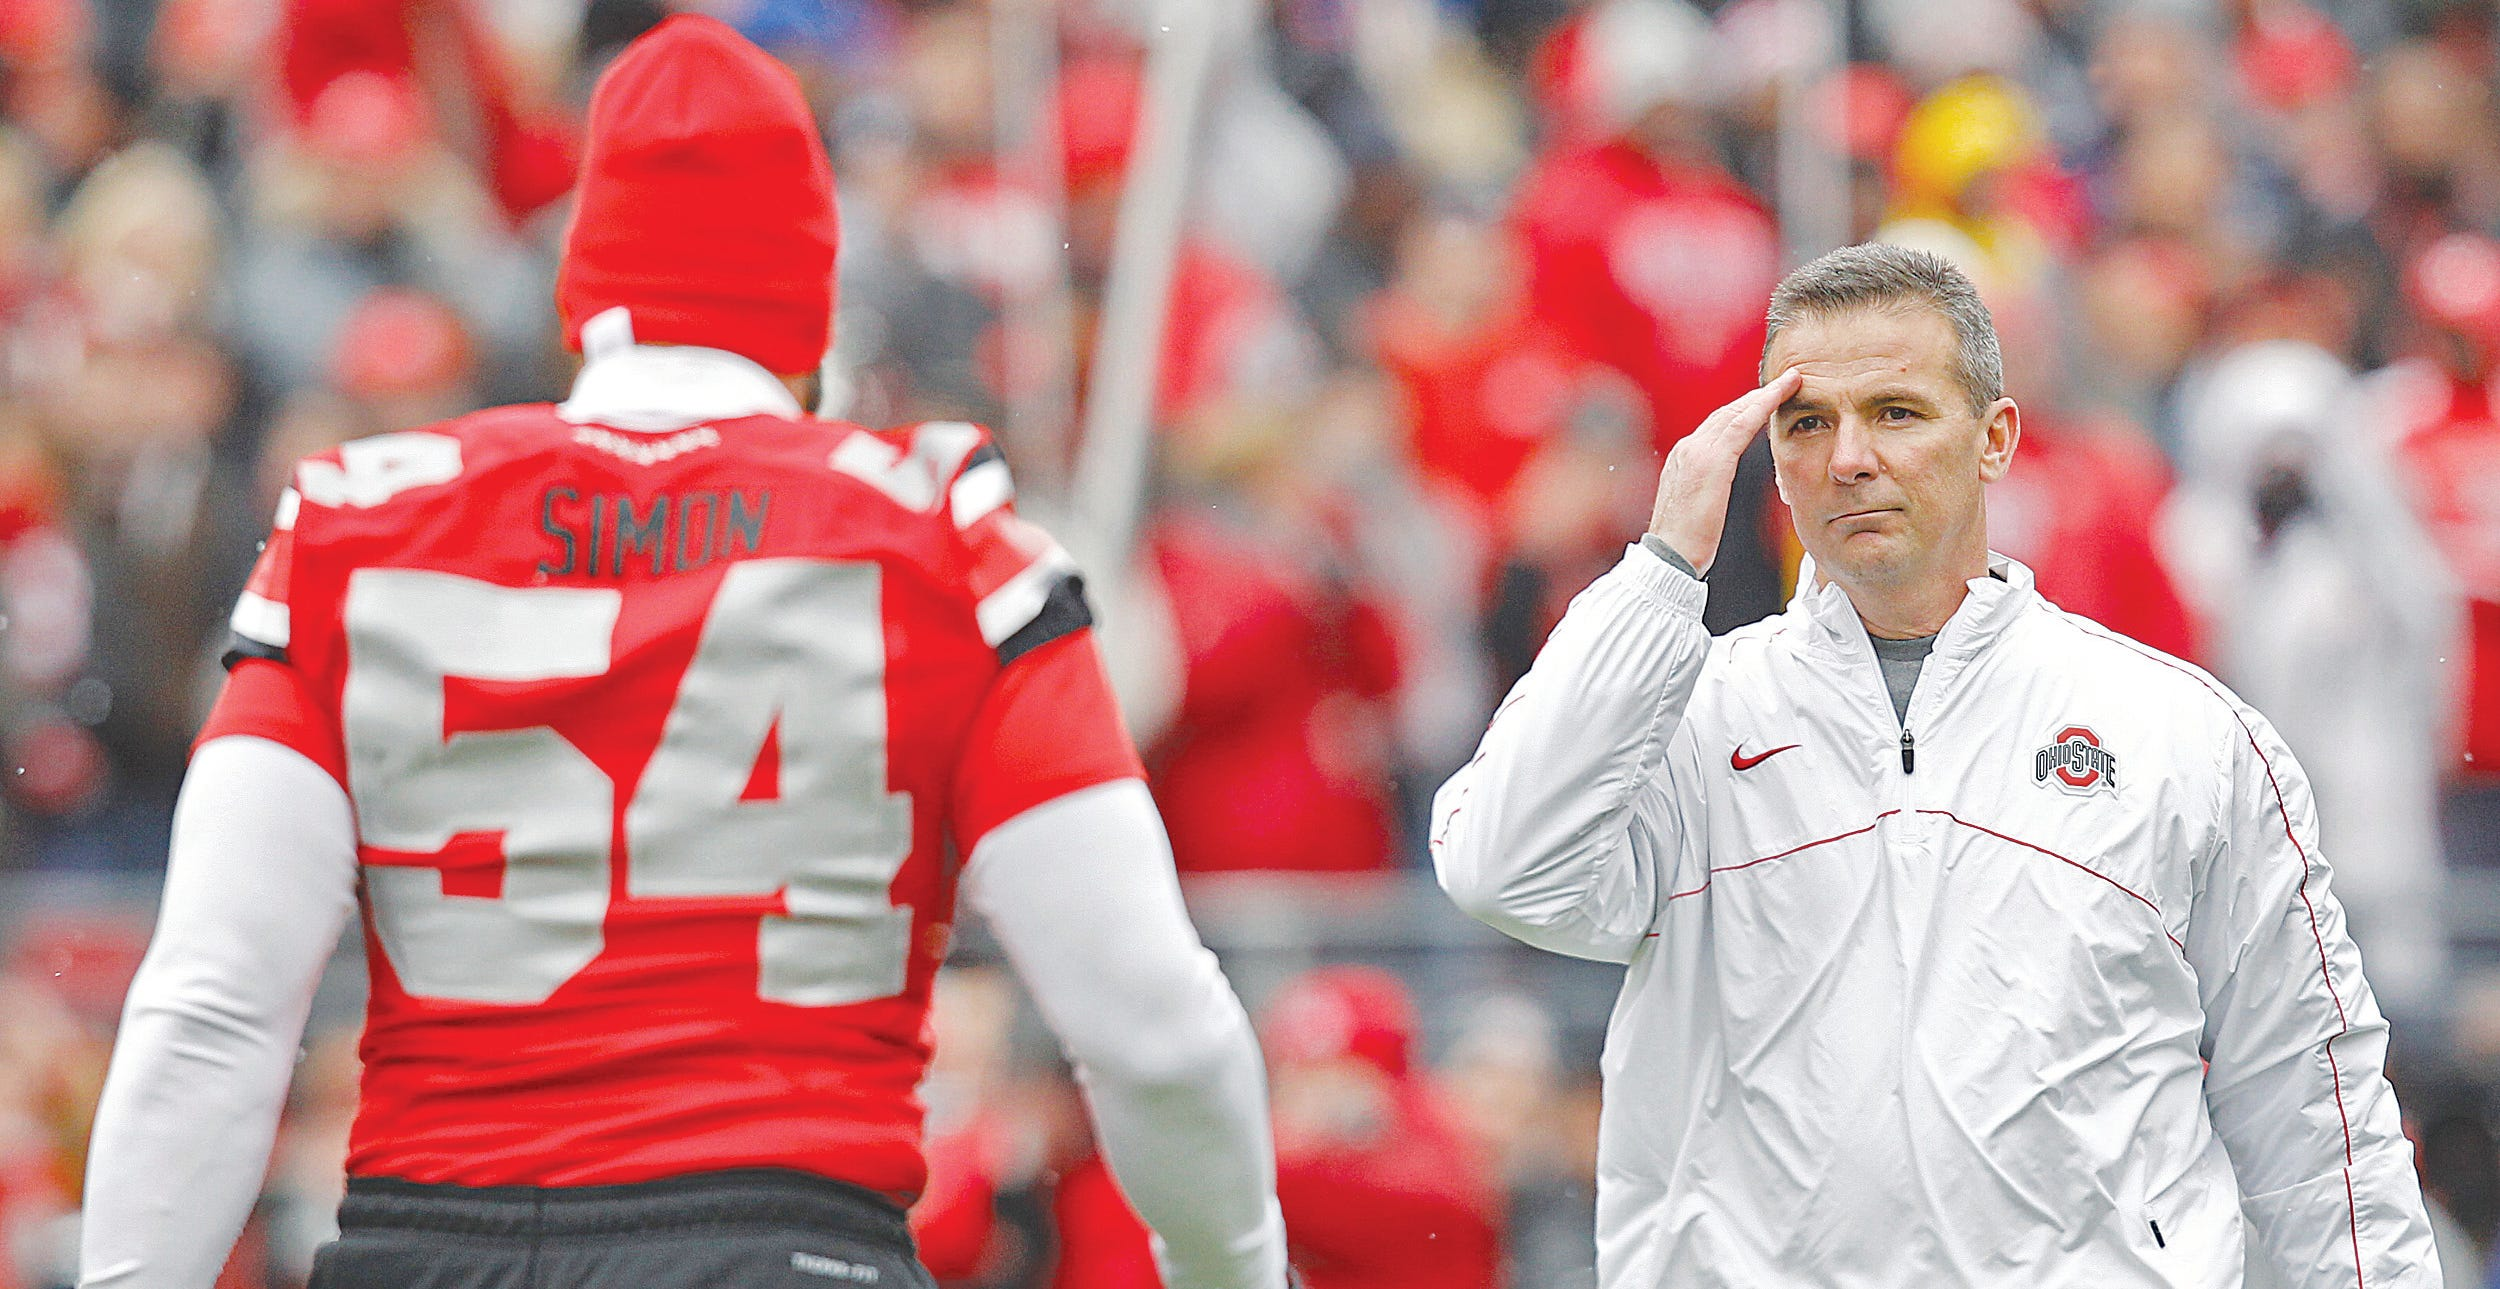 Urban Meyer honors defensive lineman John Simon on Senior Day at Ohio Stadium. A knee injury kept Simon — the heart and soul of the 2012 team — out of the Michigan game.